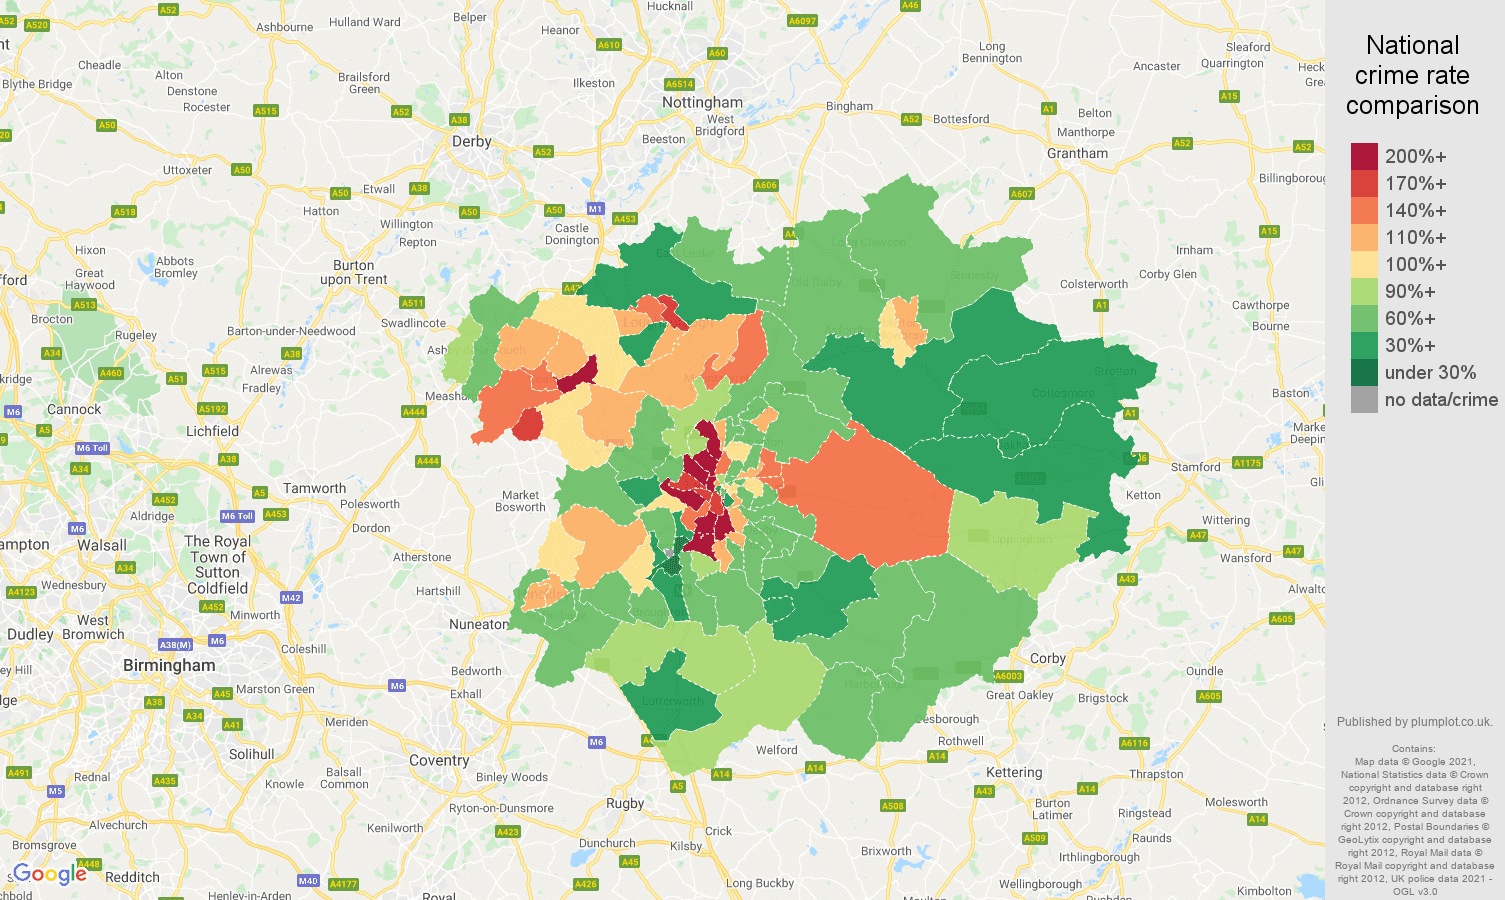 Leicester criminal damage and arson crime rate comparison map